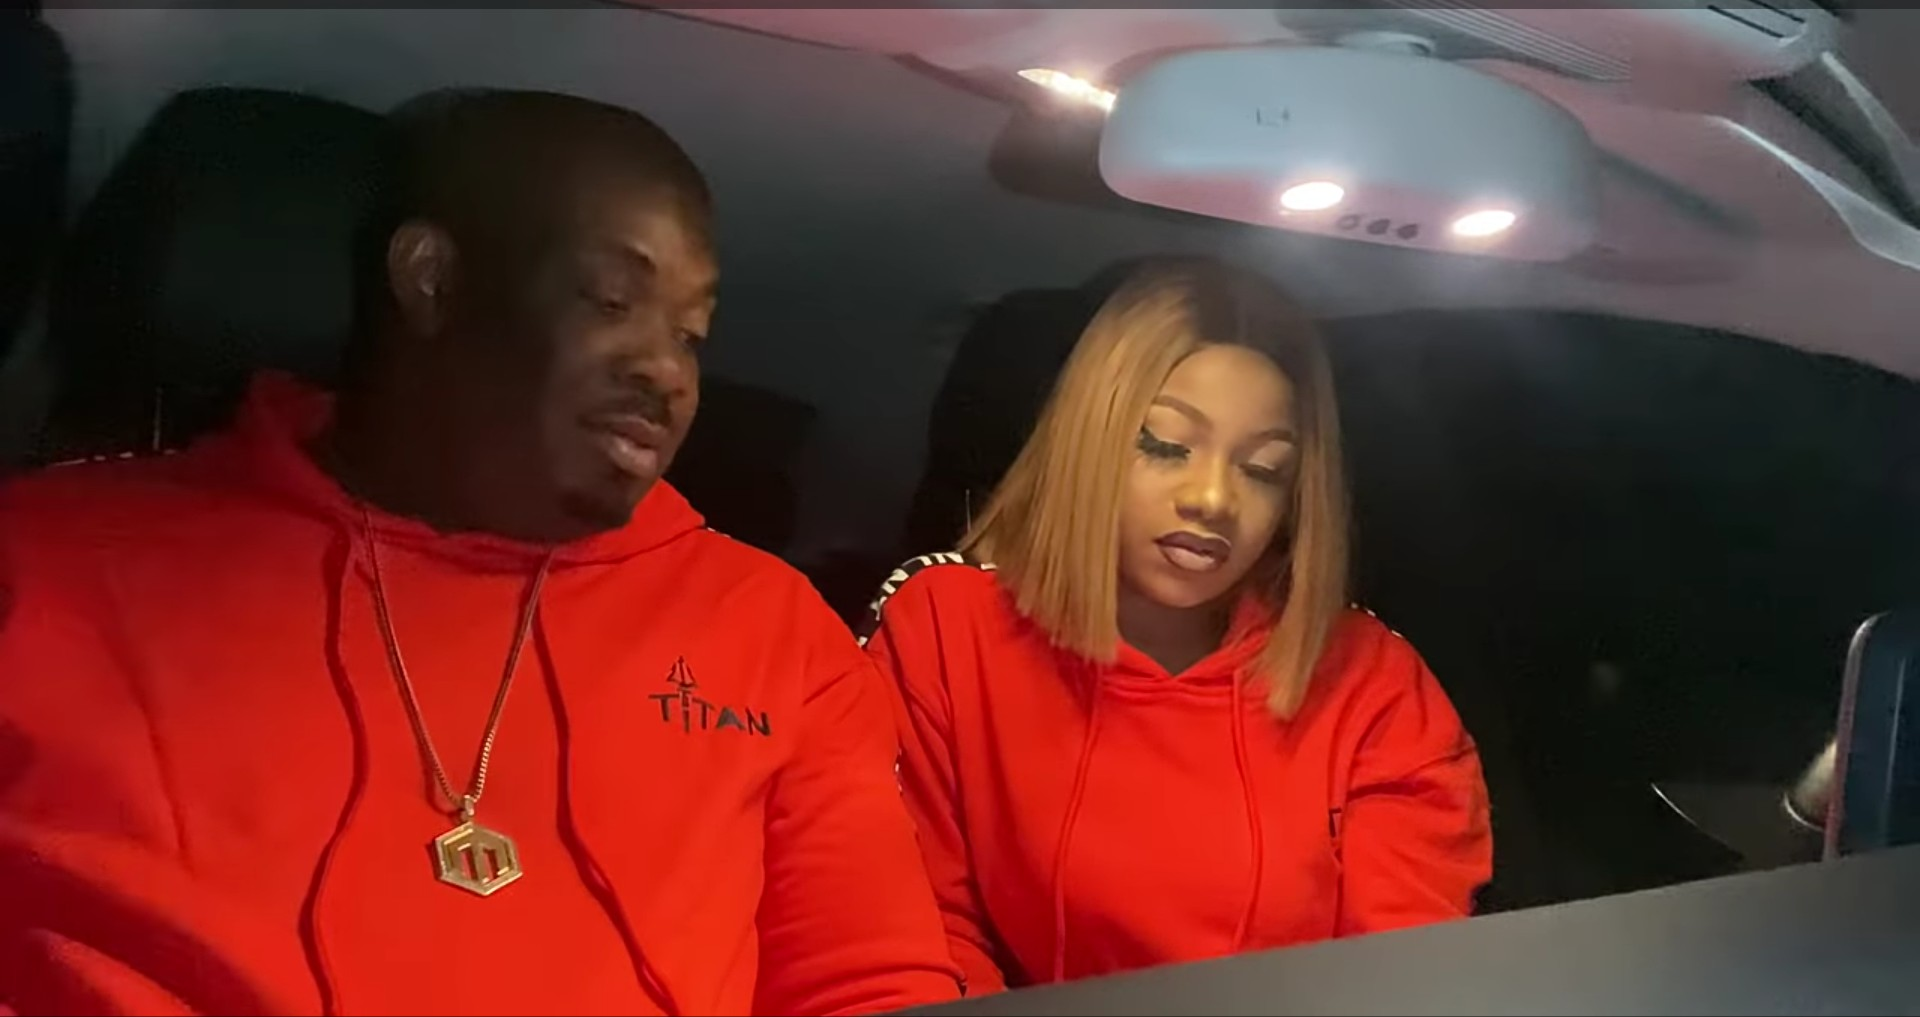 Bbnaija's Tacha Spotted Hanging out with Donjazzy